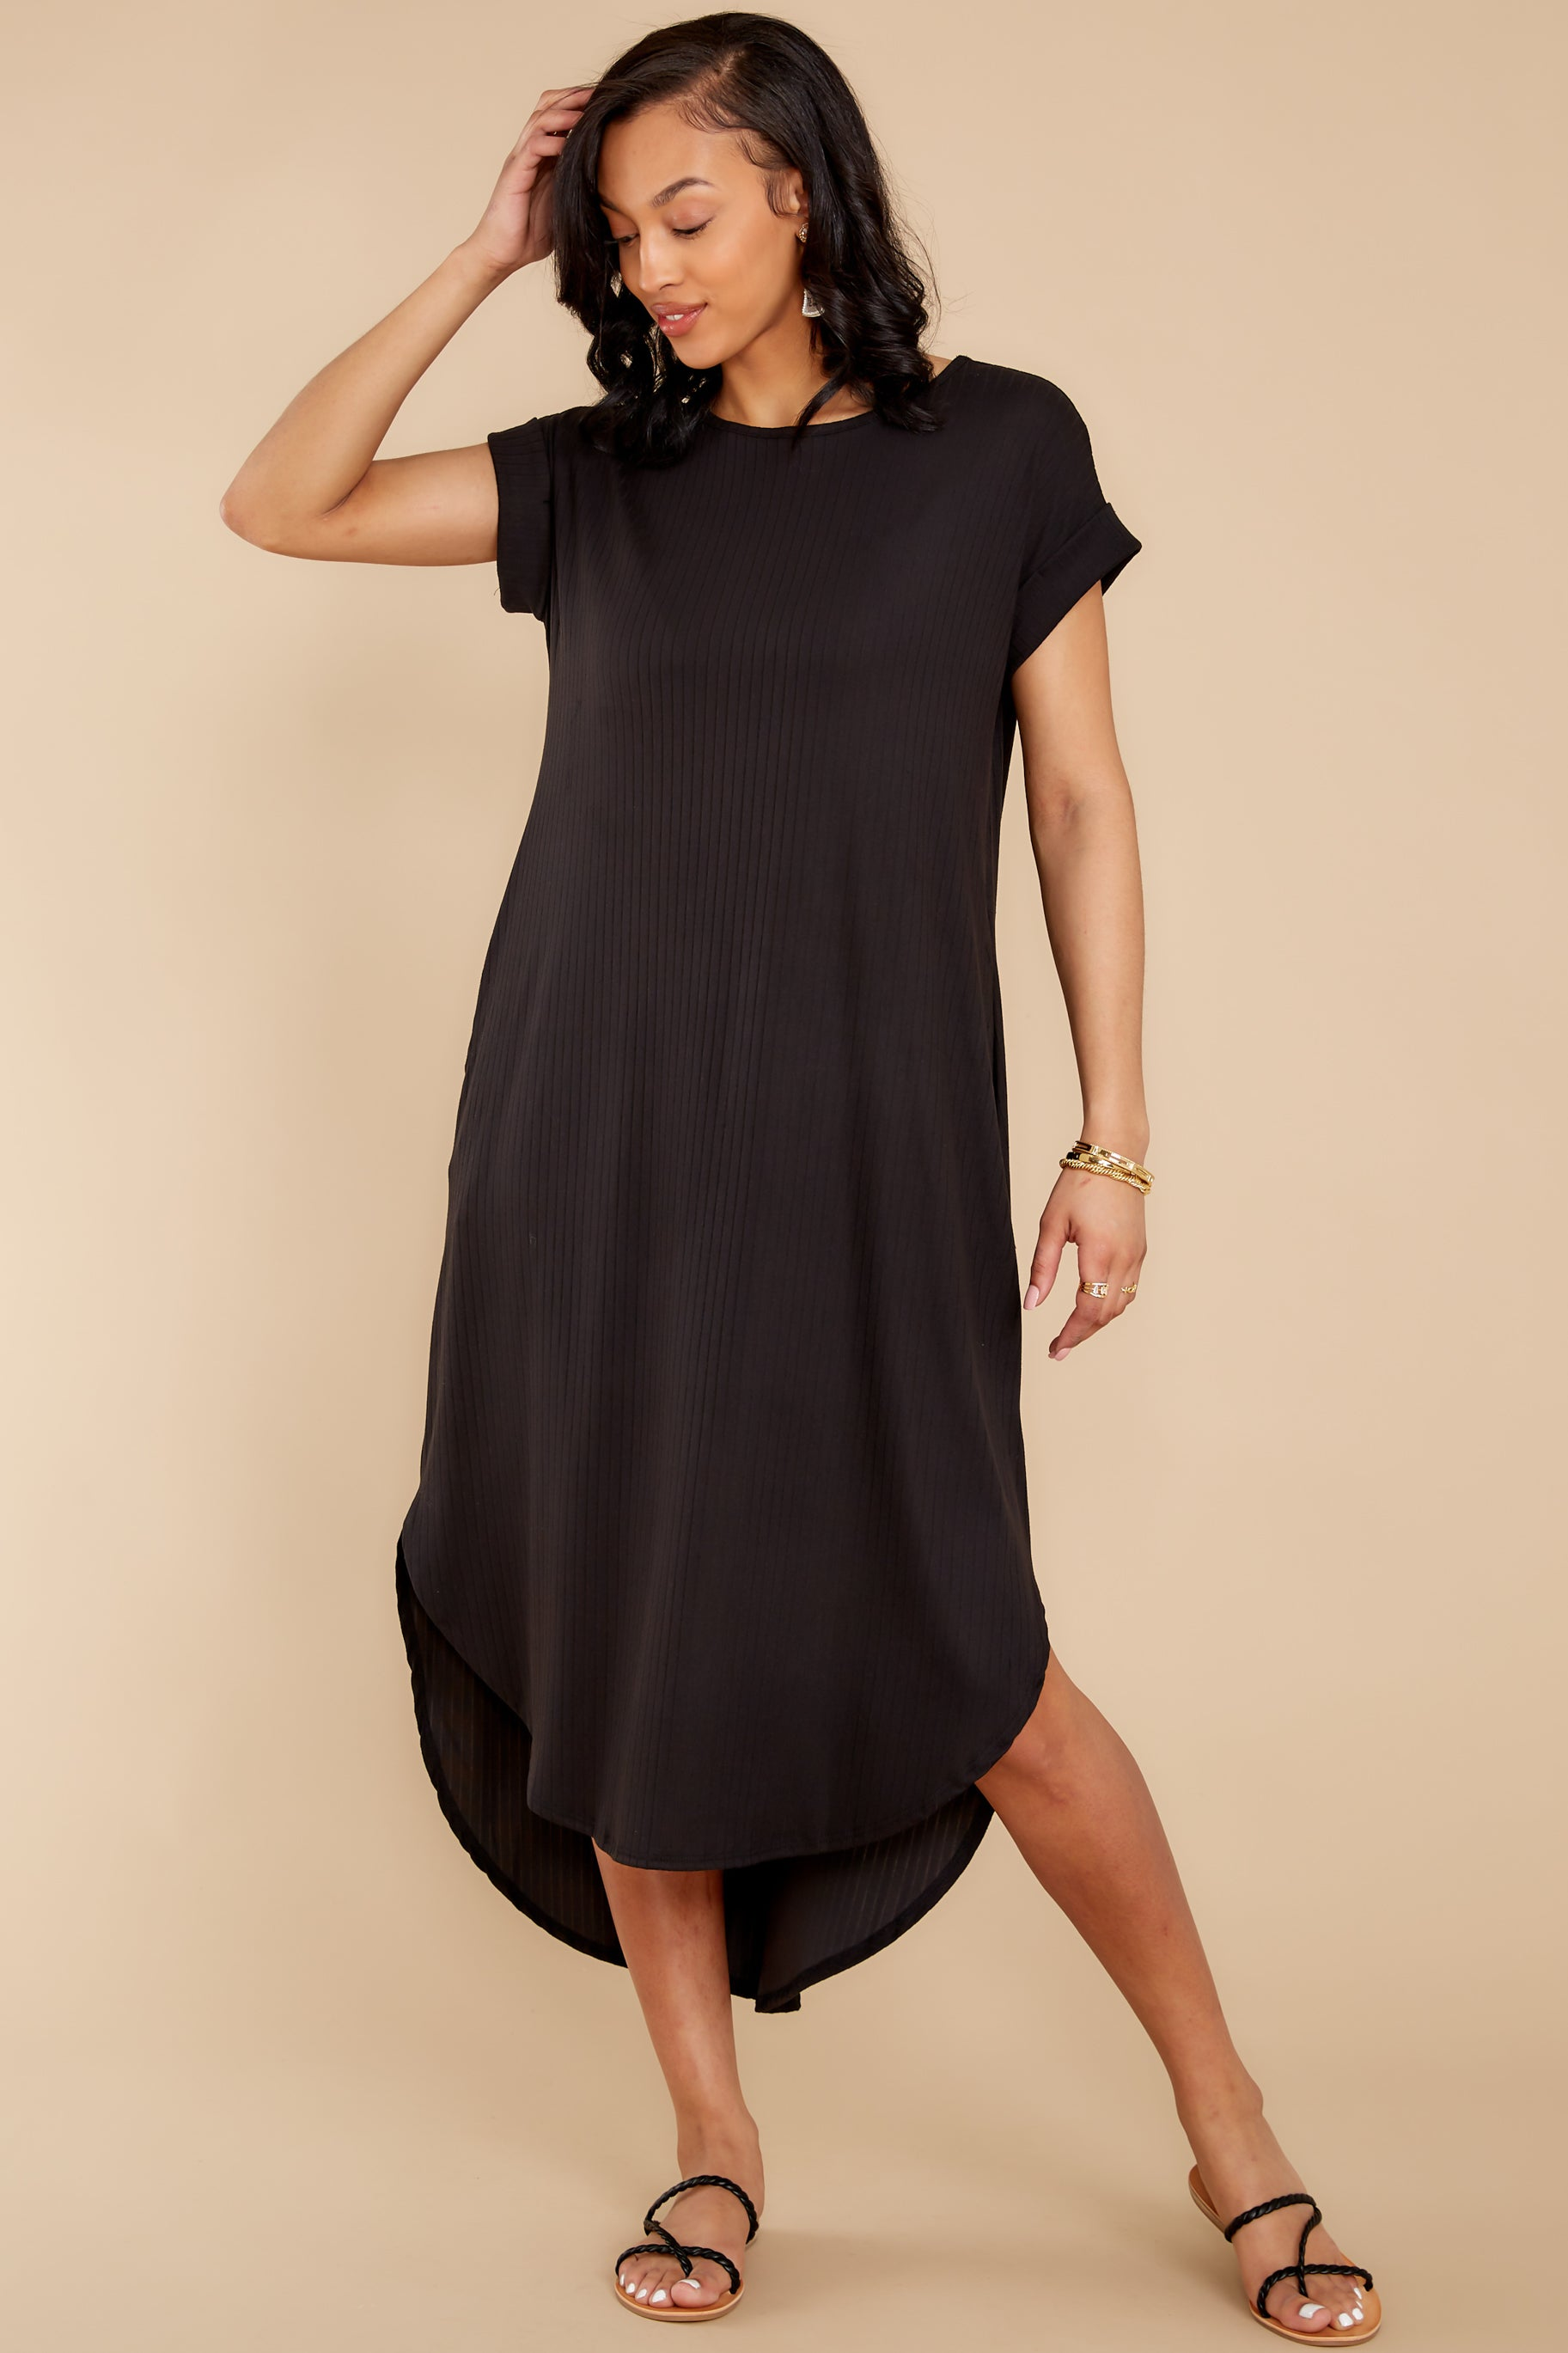 6 Come Away With Me Black Midi Dress at reddress.com